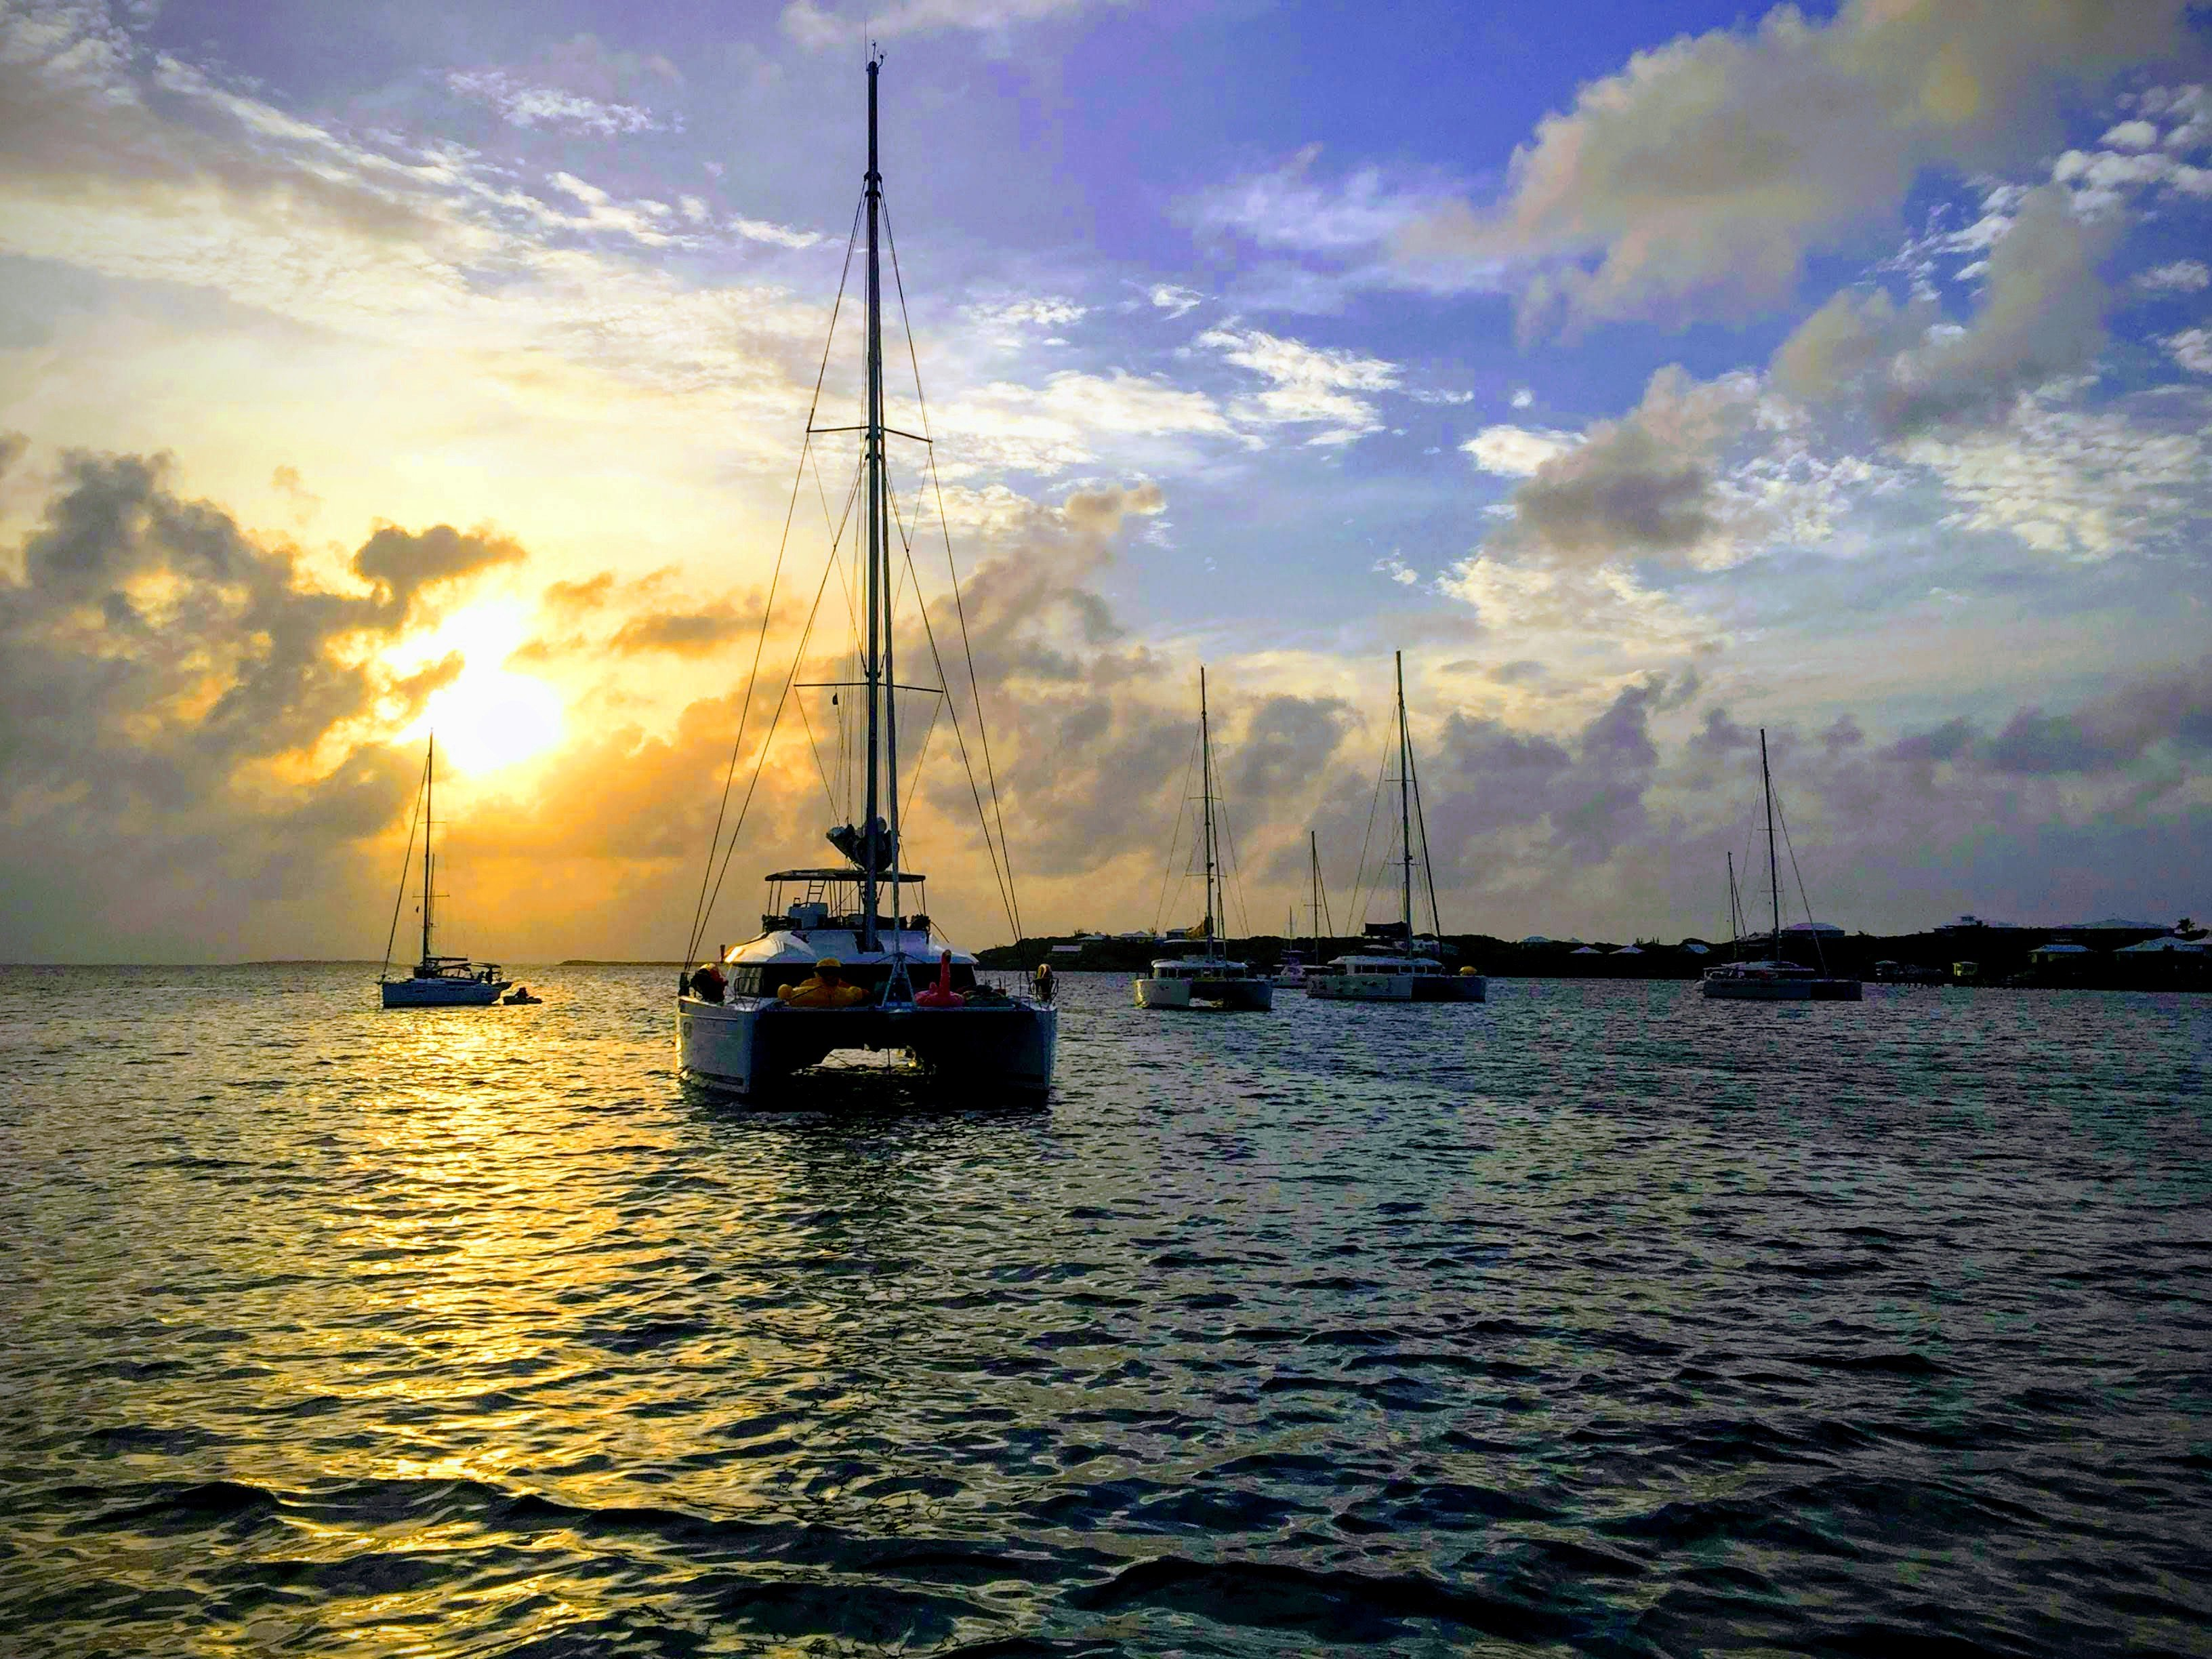 A Skippered Charter Story